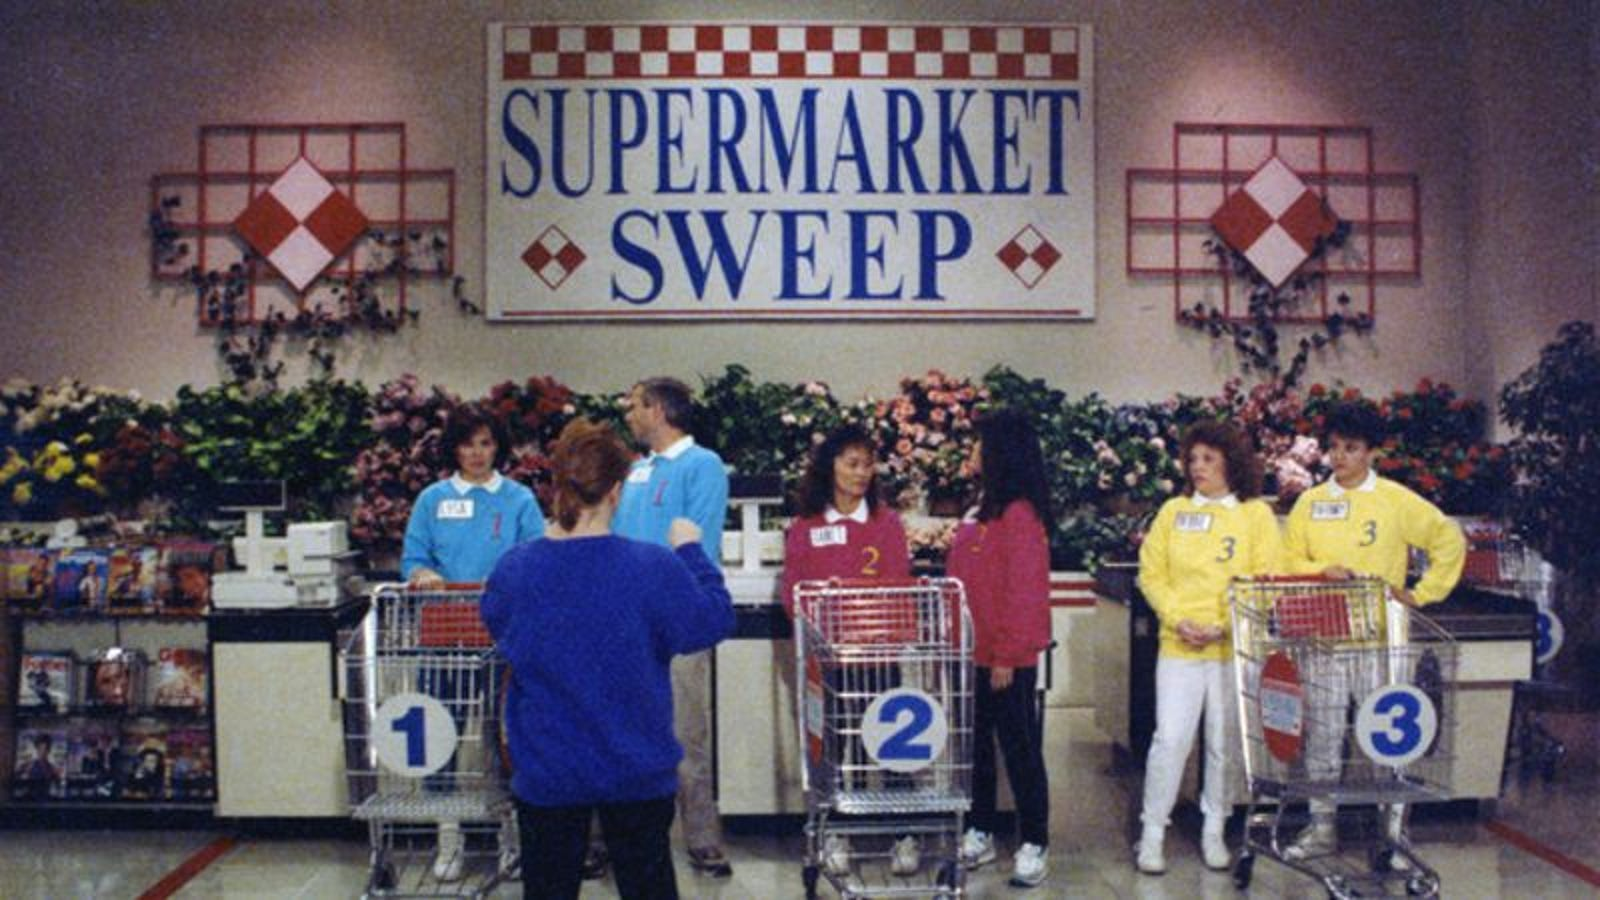 What was it like to be on Supermarket Sweep?